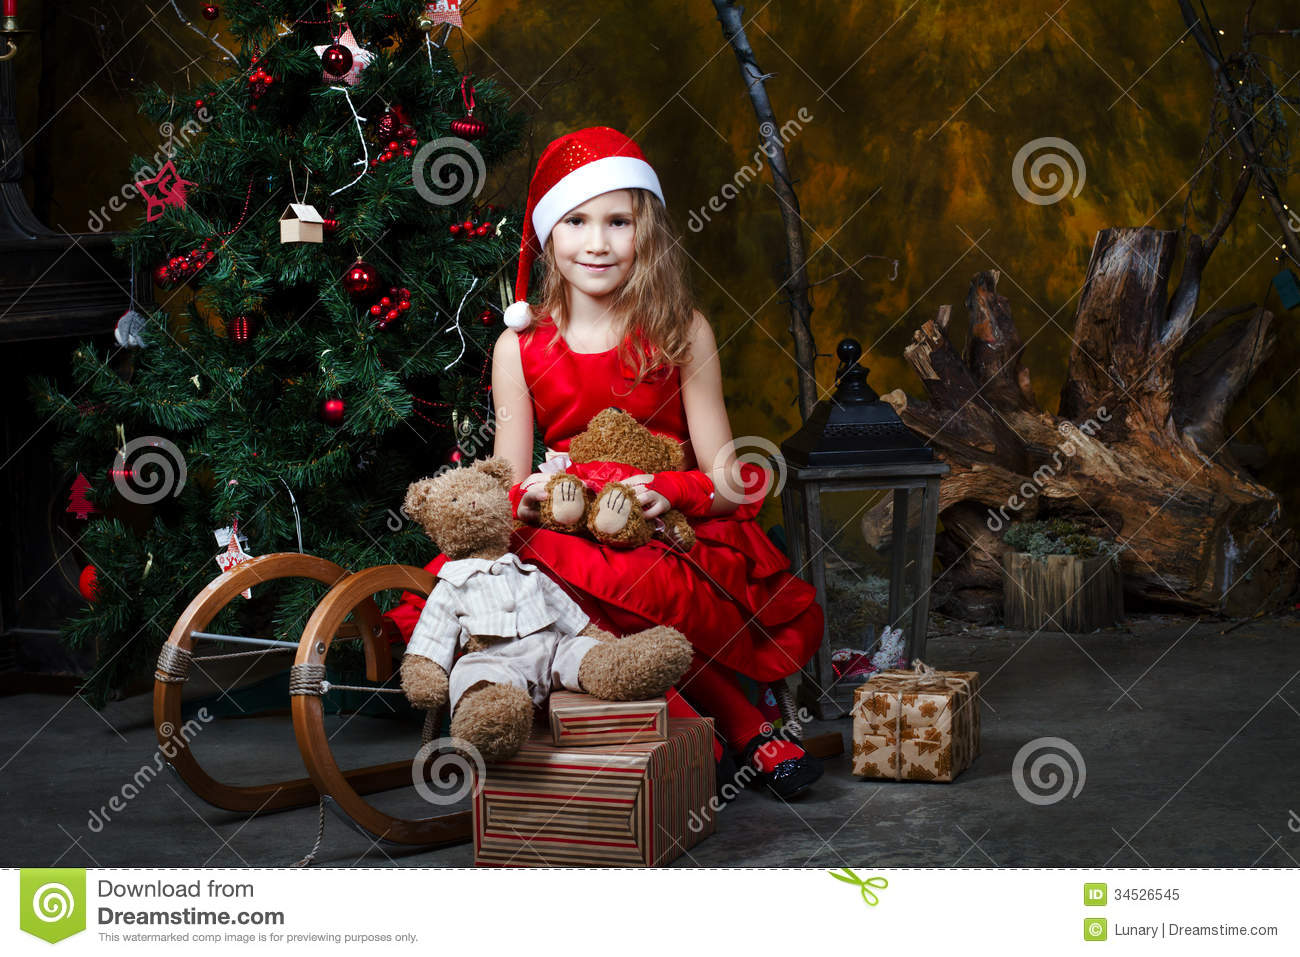 55373f76047e Royalty-Free Stock Photo. Little girl sitting on a sled with a Christmas  tree